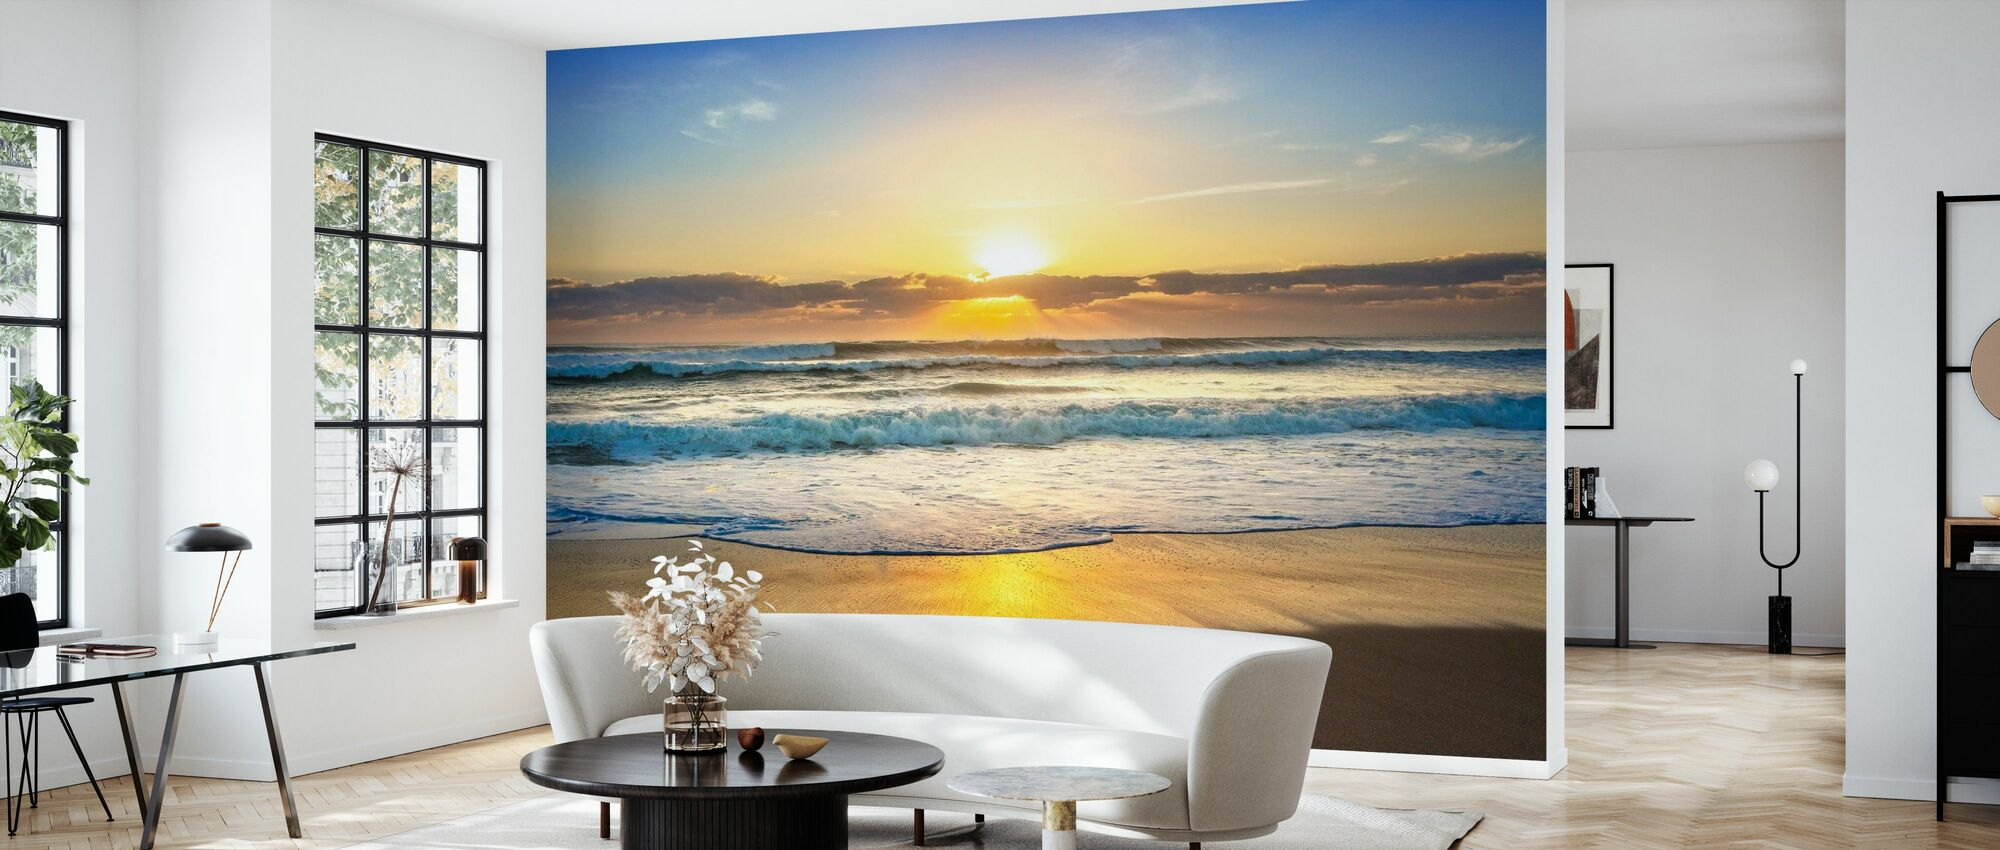 Waves Rolling in at Sunrise - Wallpaper - Living Room